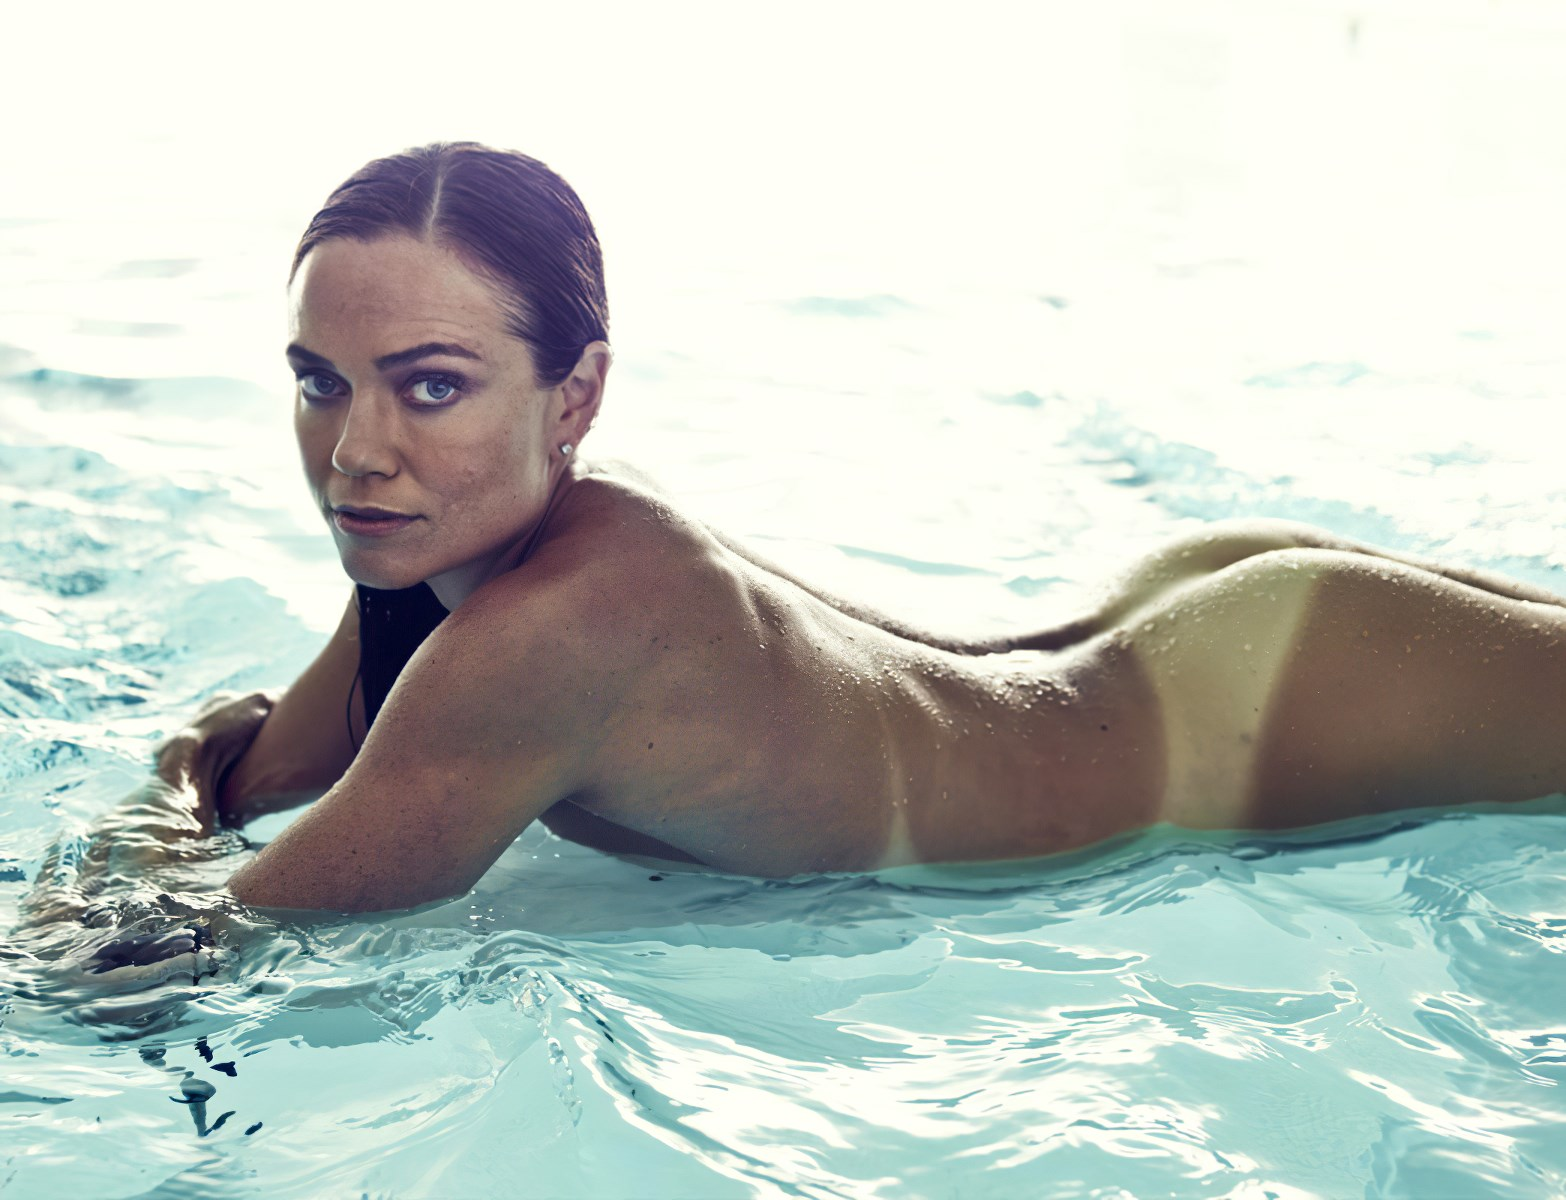 US Olympic Swimmer Natalie Coughlin Pussy Slip In Nude Outtakes